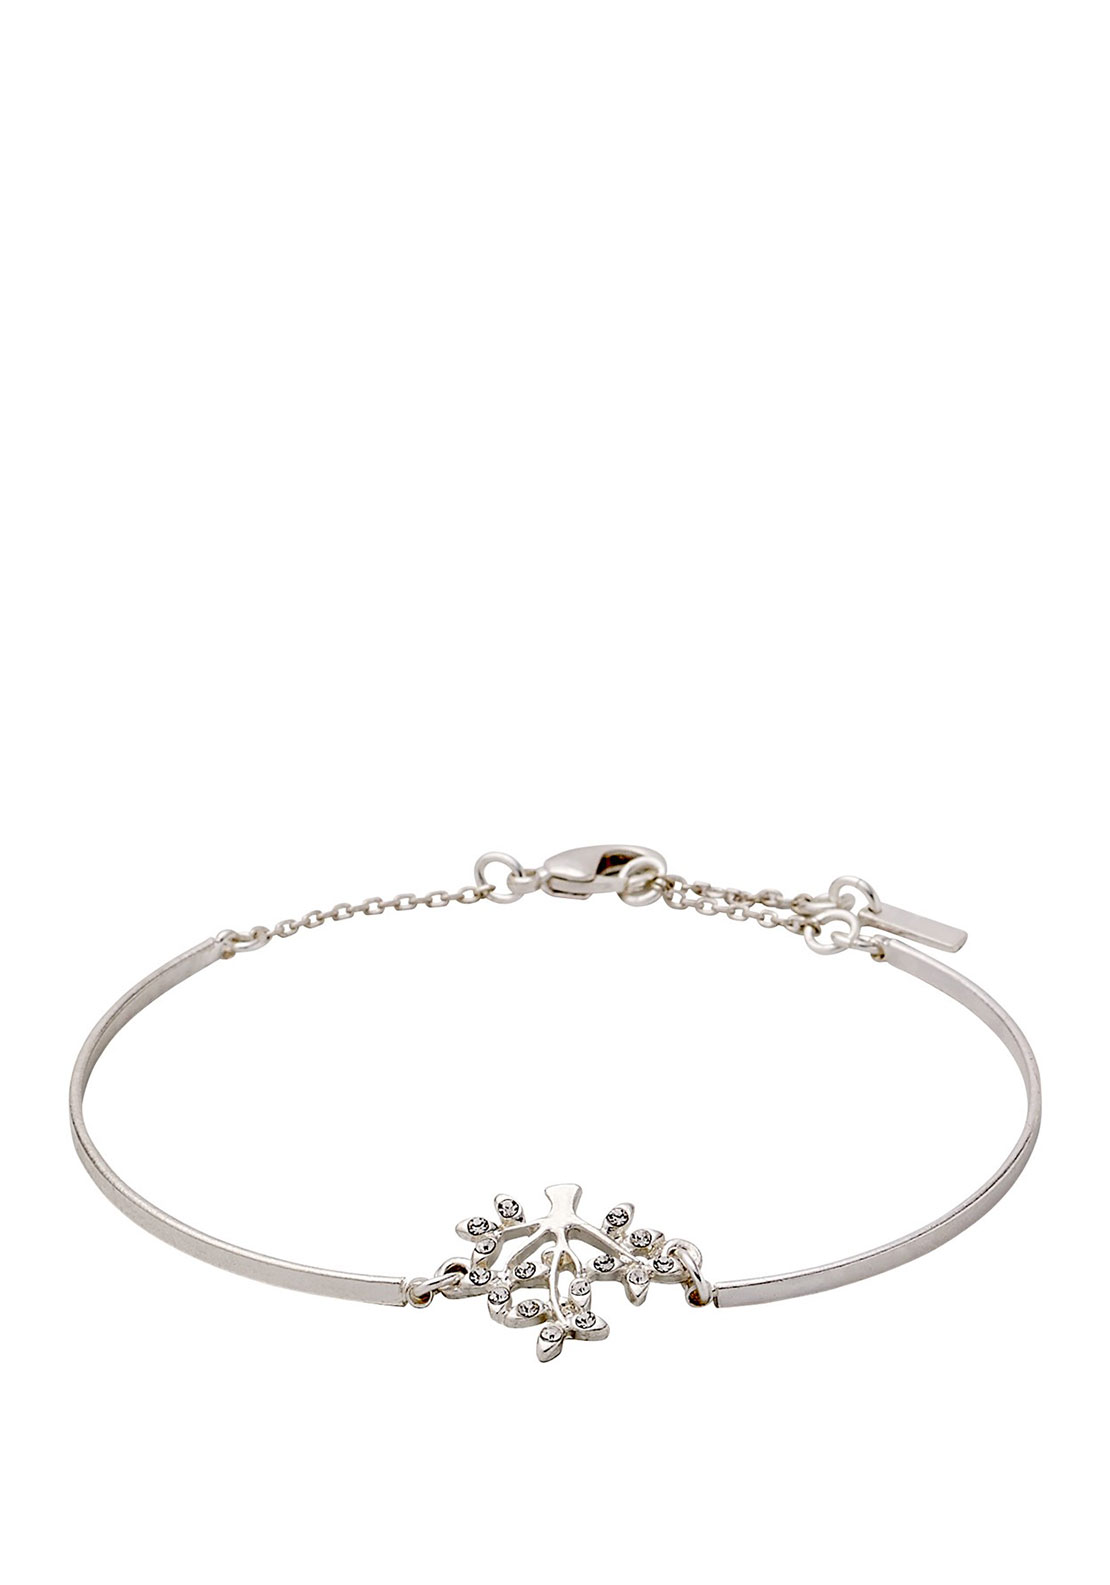 Pilgrim Crystal Tree Bracelet, Silver Plated